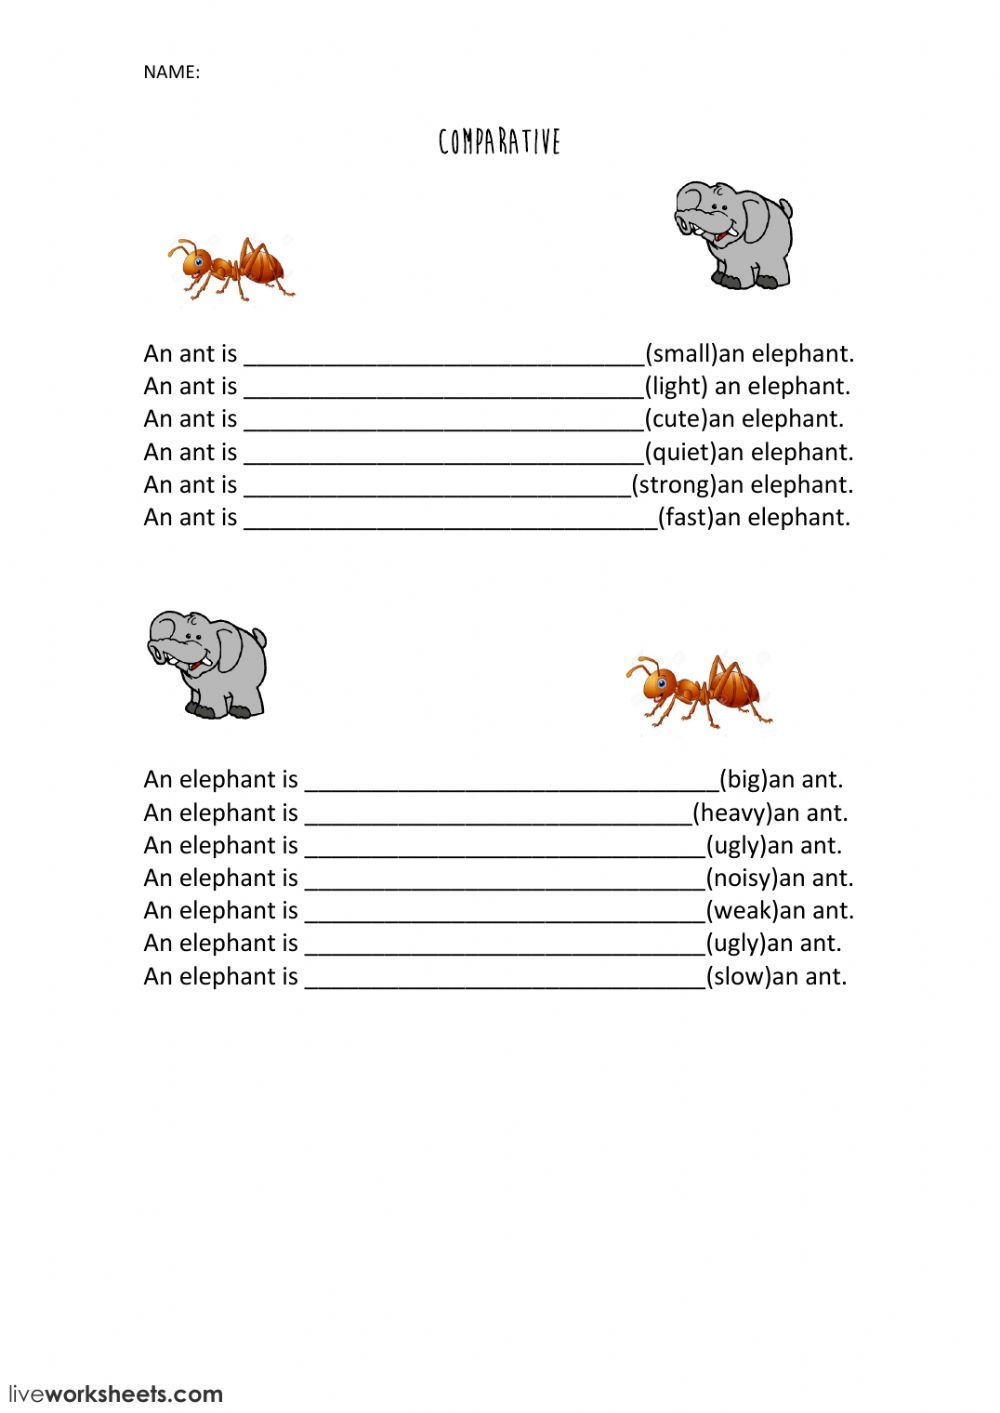 Comparatives online worksheet. You can do the exercises